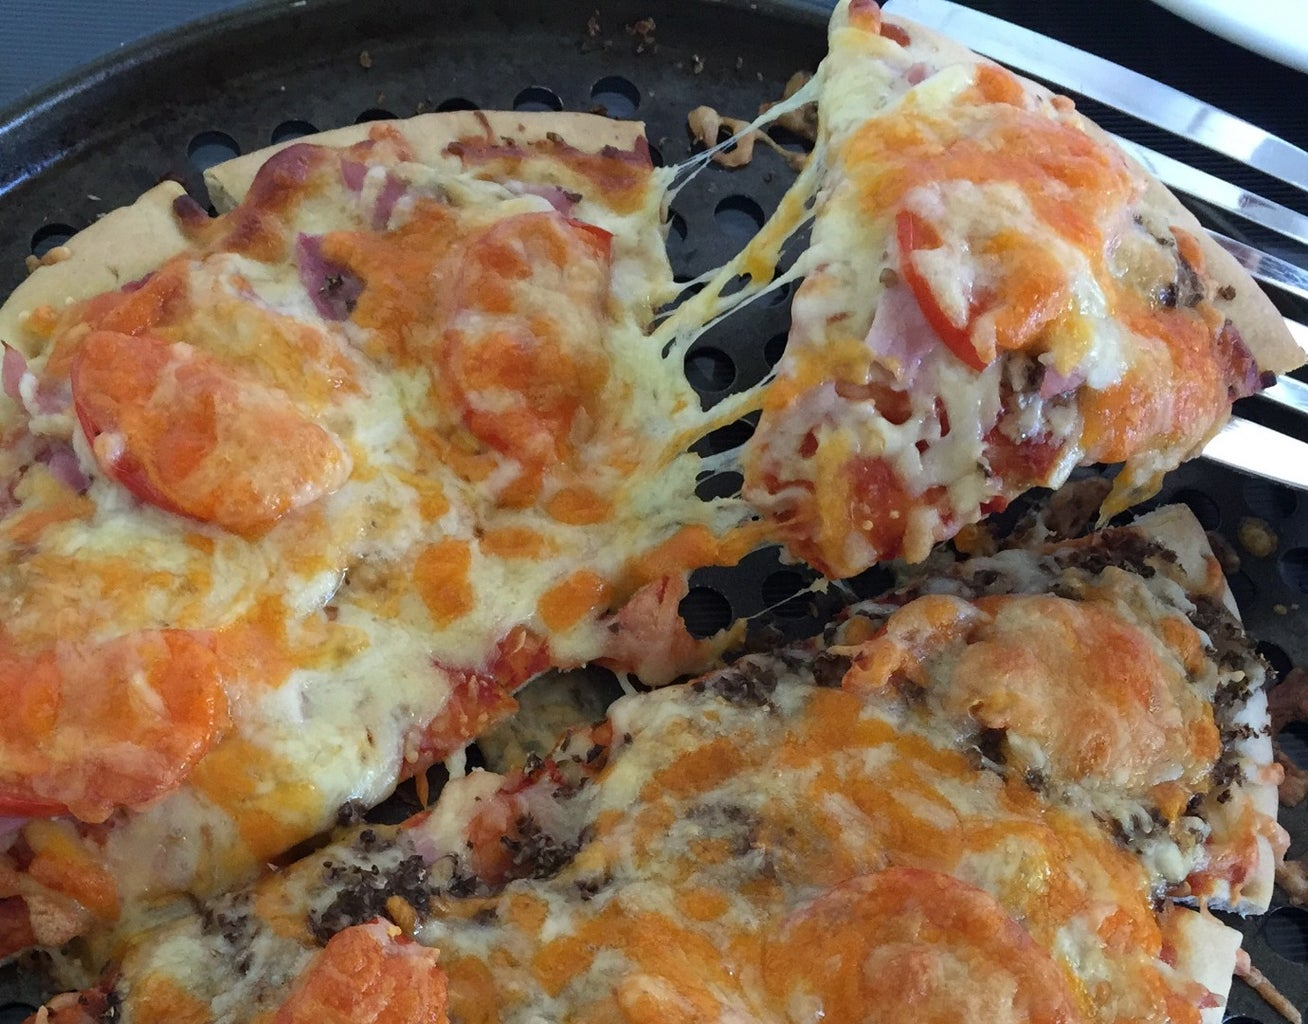 Your Layered Custom Pizza Is Pimped and Ready to Eat